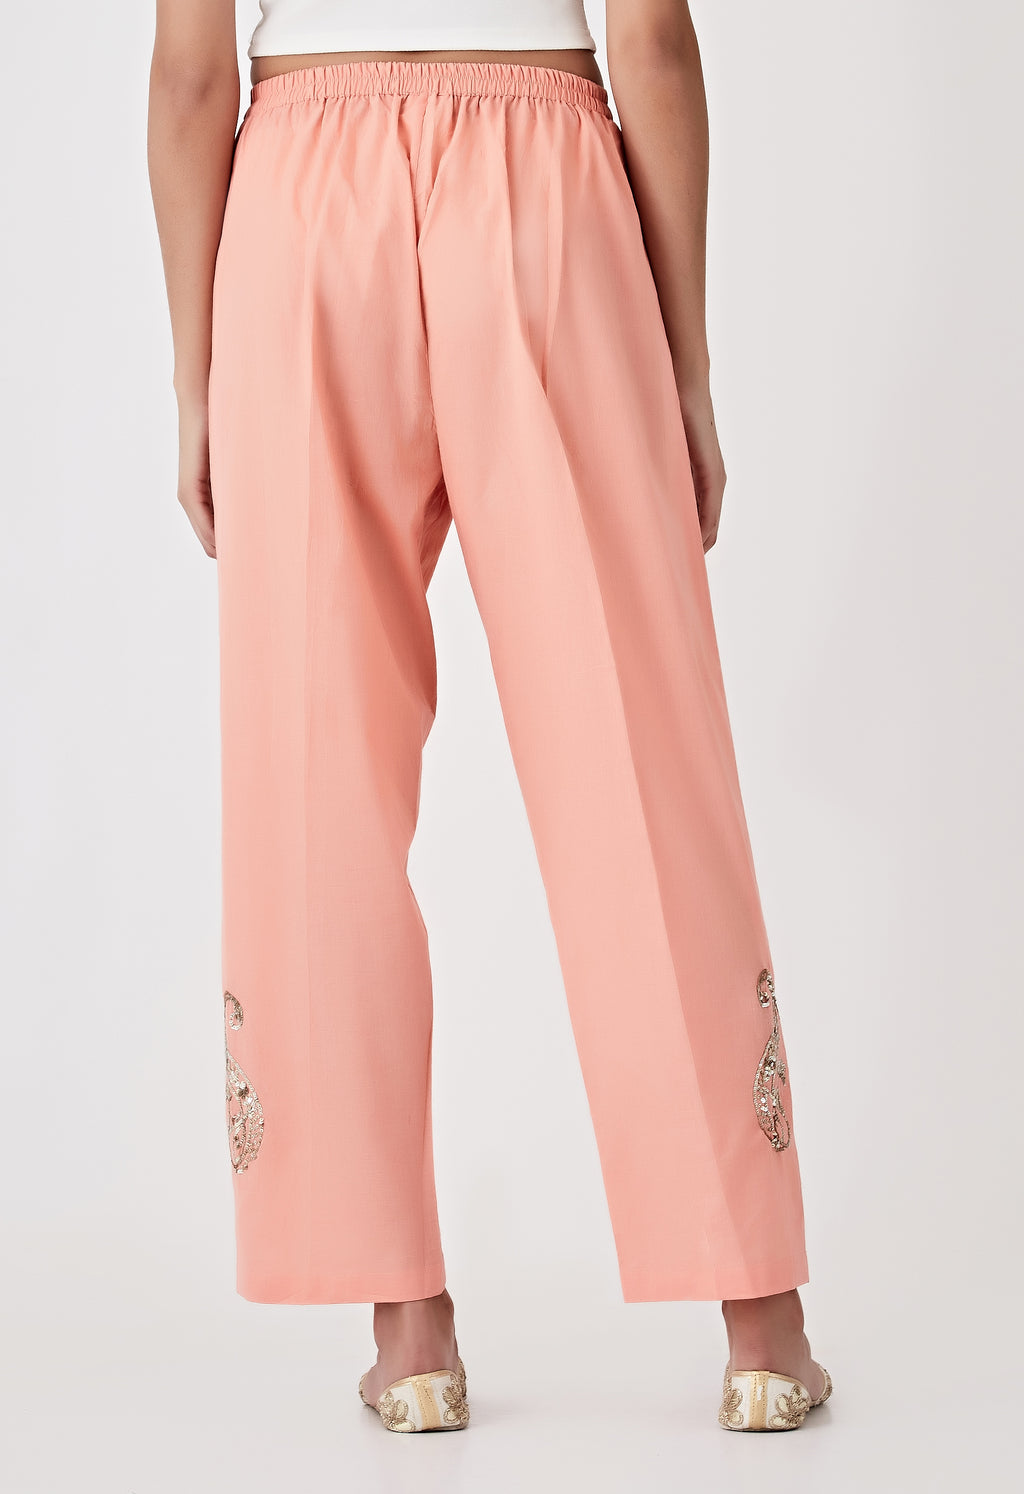 Sequins Pants - Peach